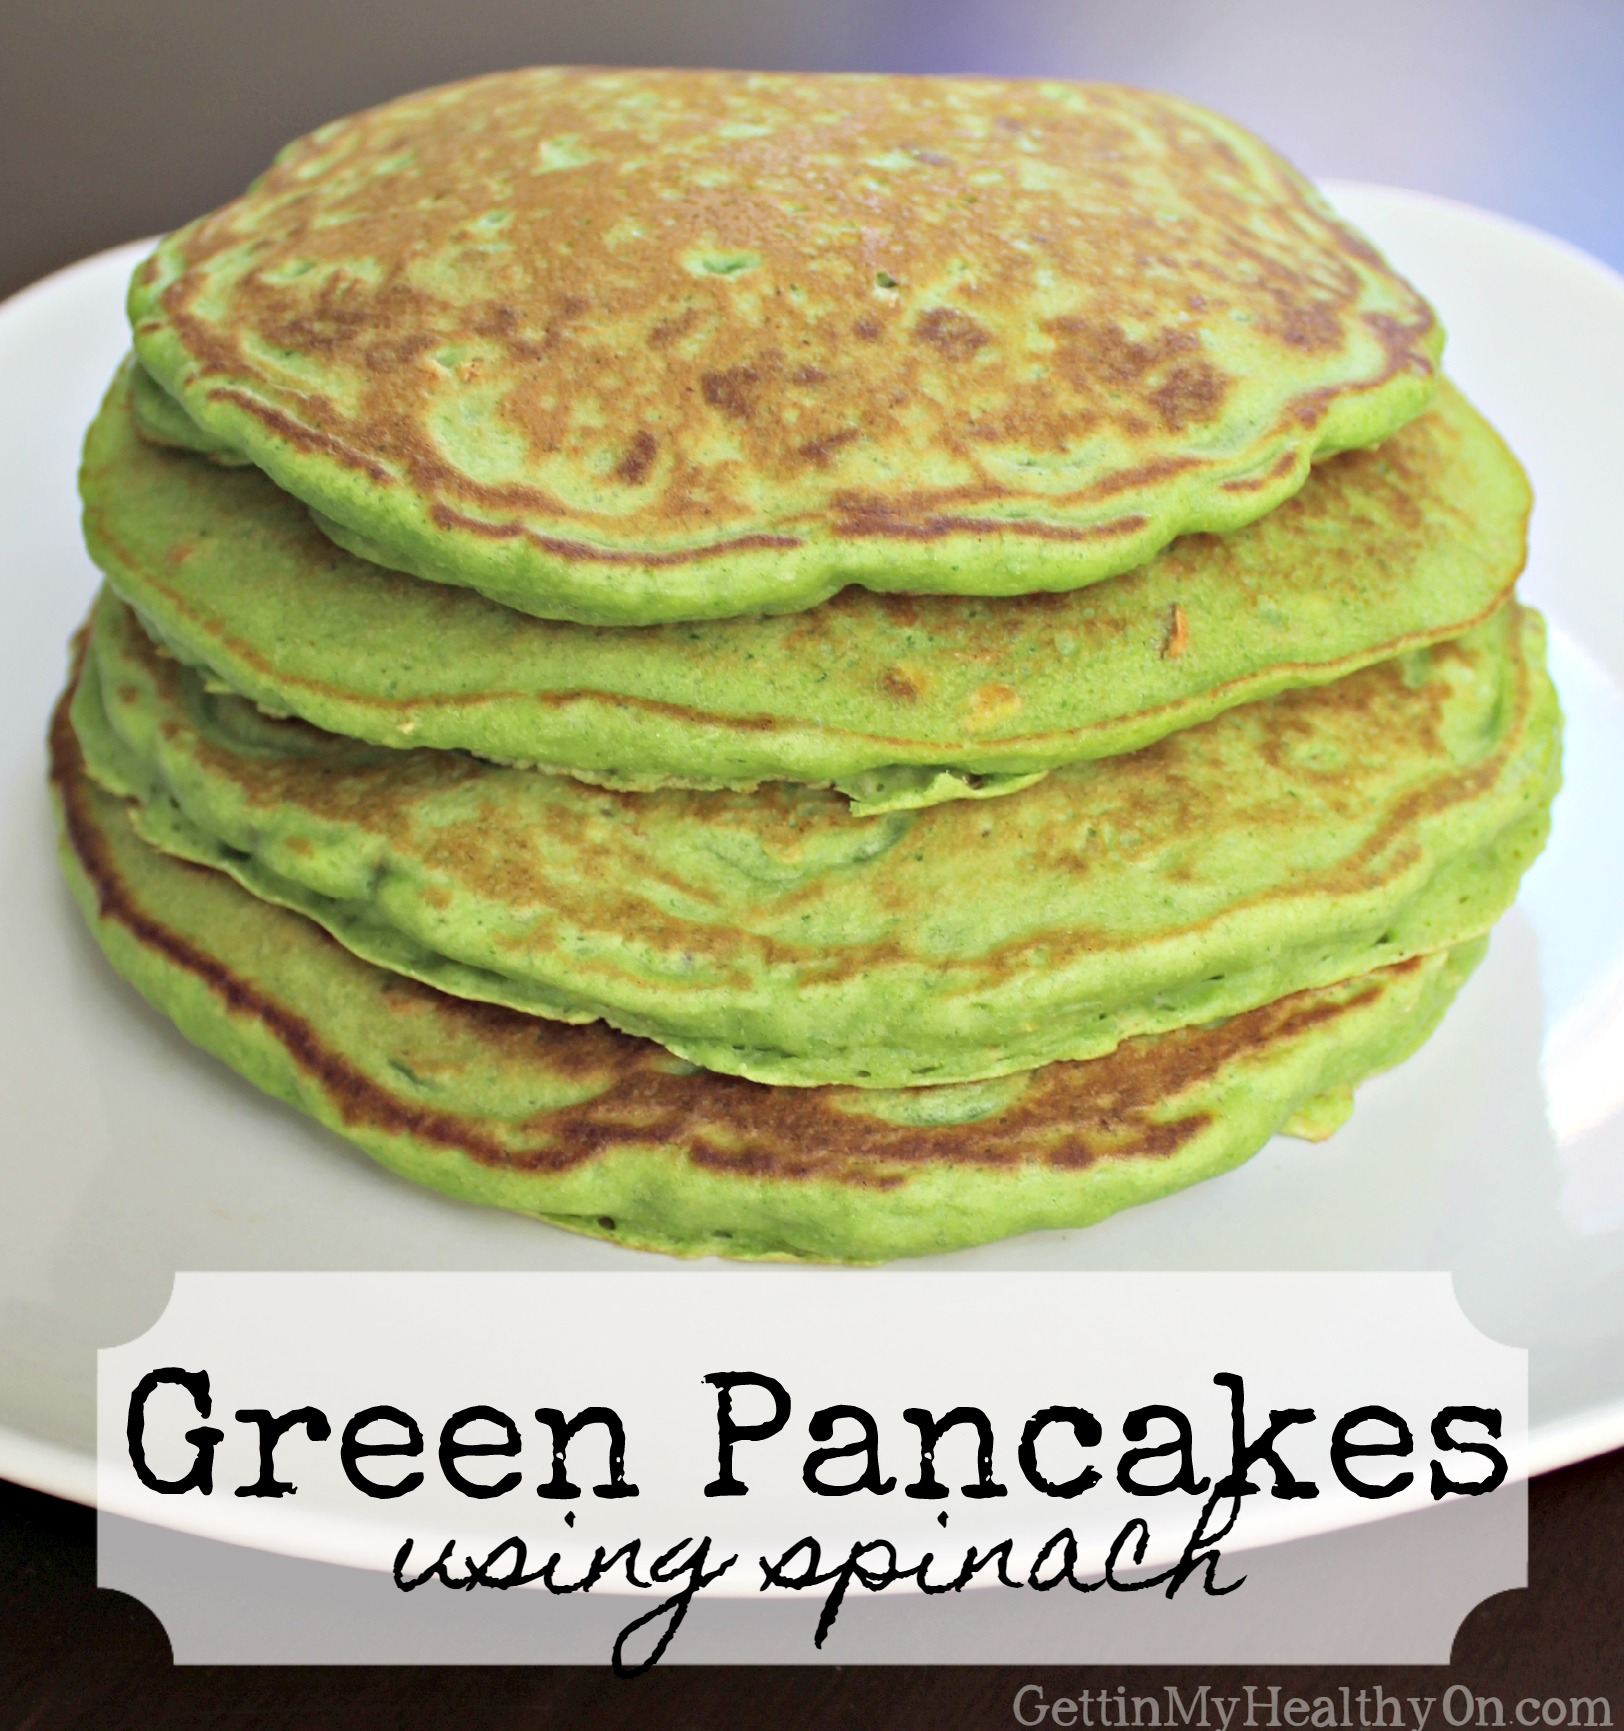 Green Pancakes with Spinach for St. Patrick's Day